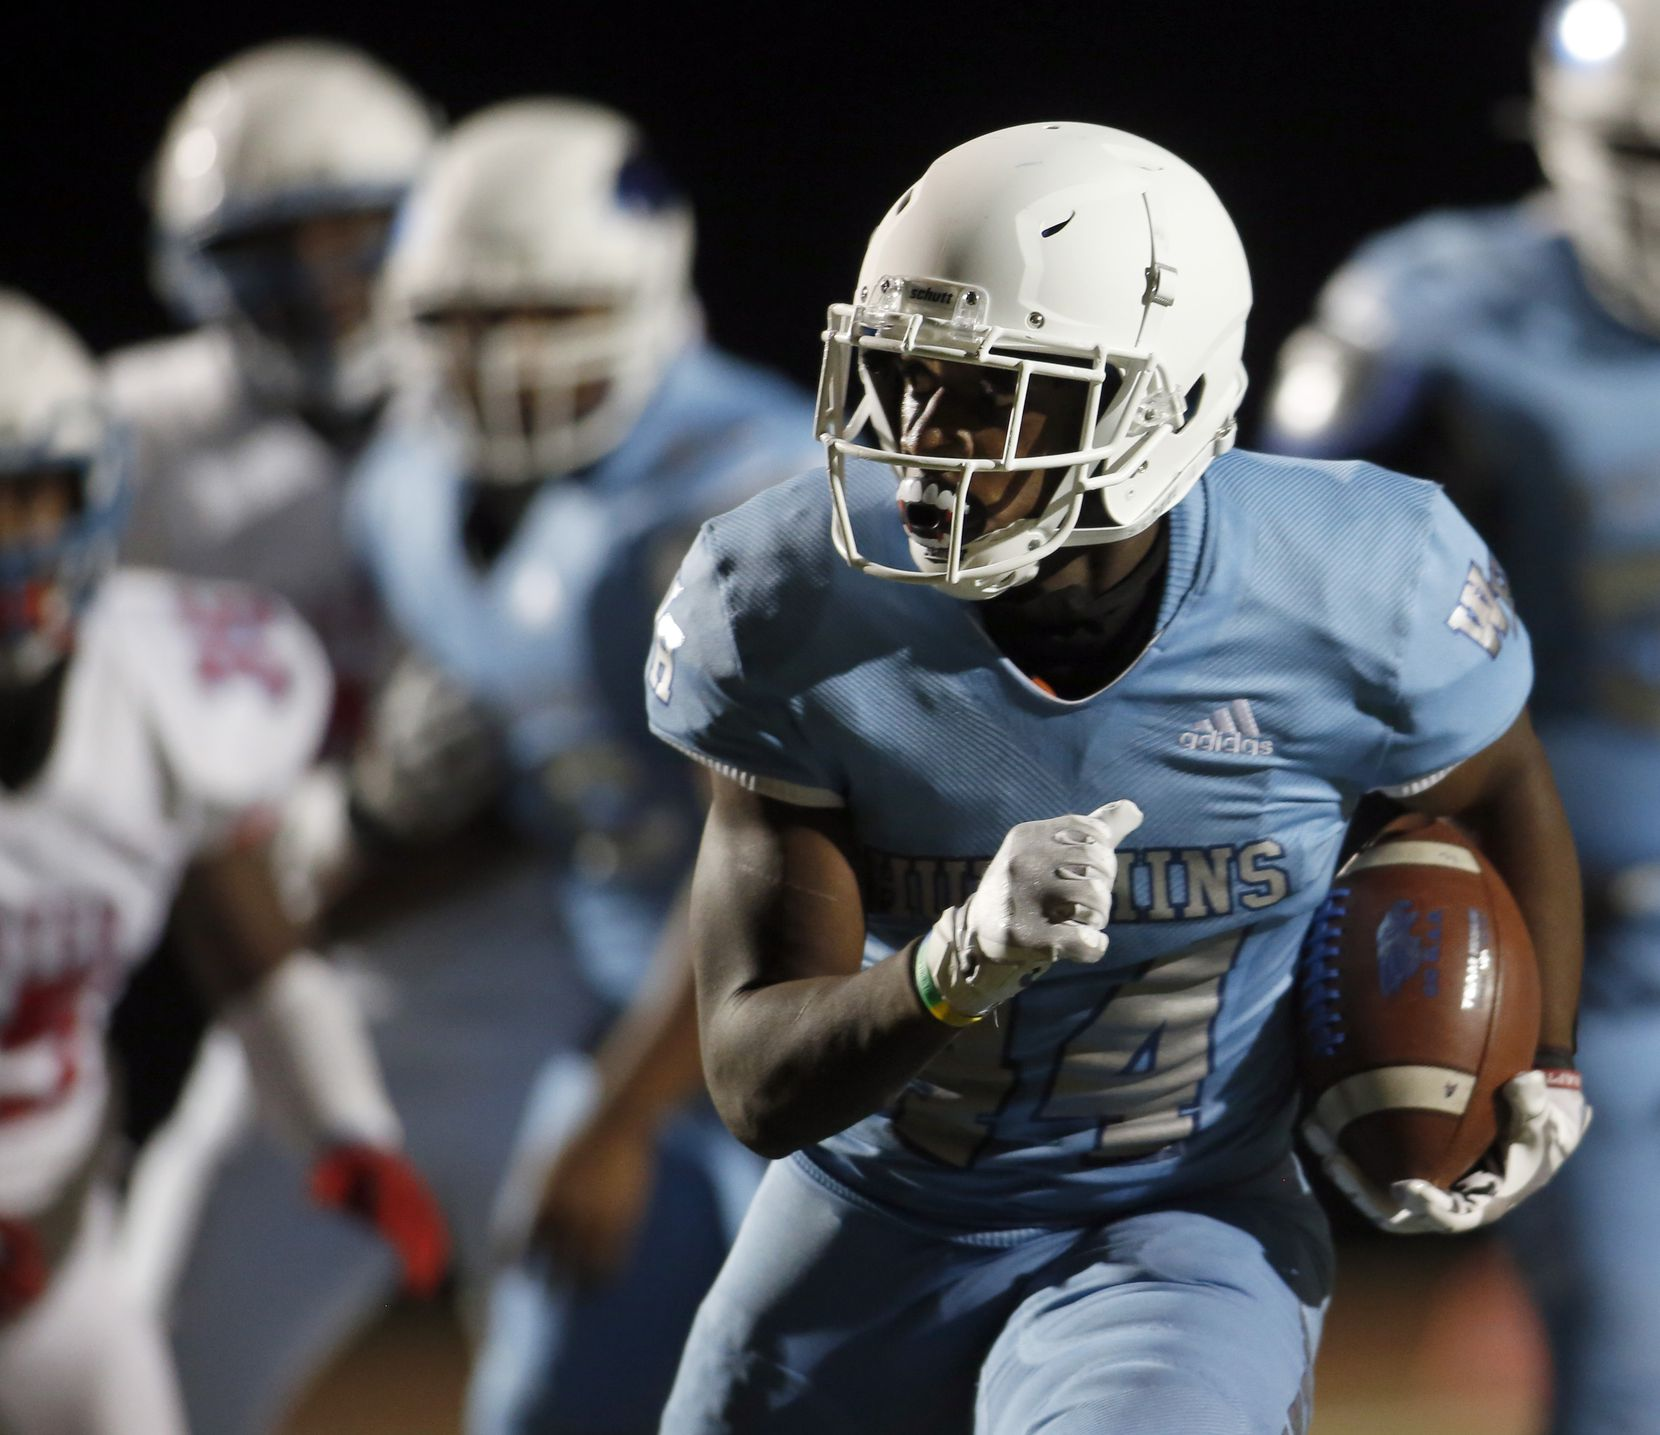 Wilmer Hutchins running back Billy Monroe, lll (44), maneuvers his way into the end zone for a rushing touchdown during 2nd quarter action against Dallas Carter. The two teams played their District 8-4A Division 1 football game at Wilmer Hutchins High School Stadium in Dallas on October 23, 2020. (Steve Hamm/ Special Contributor)